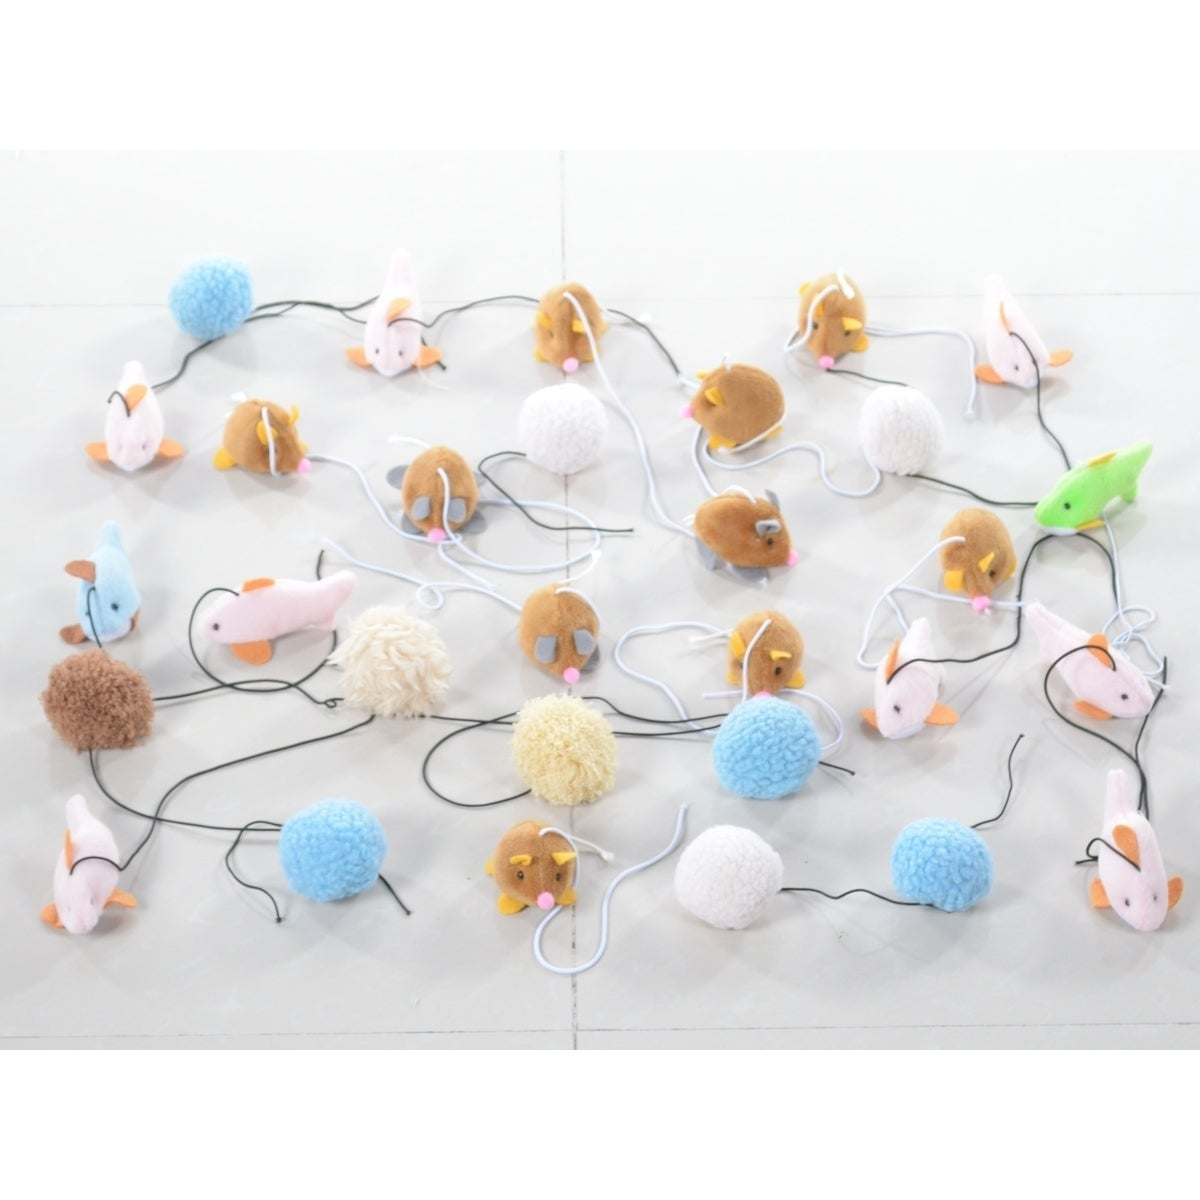 Armarkat Pet Toys for Cats TOY5-30PCS (Multi - Polyester ...